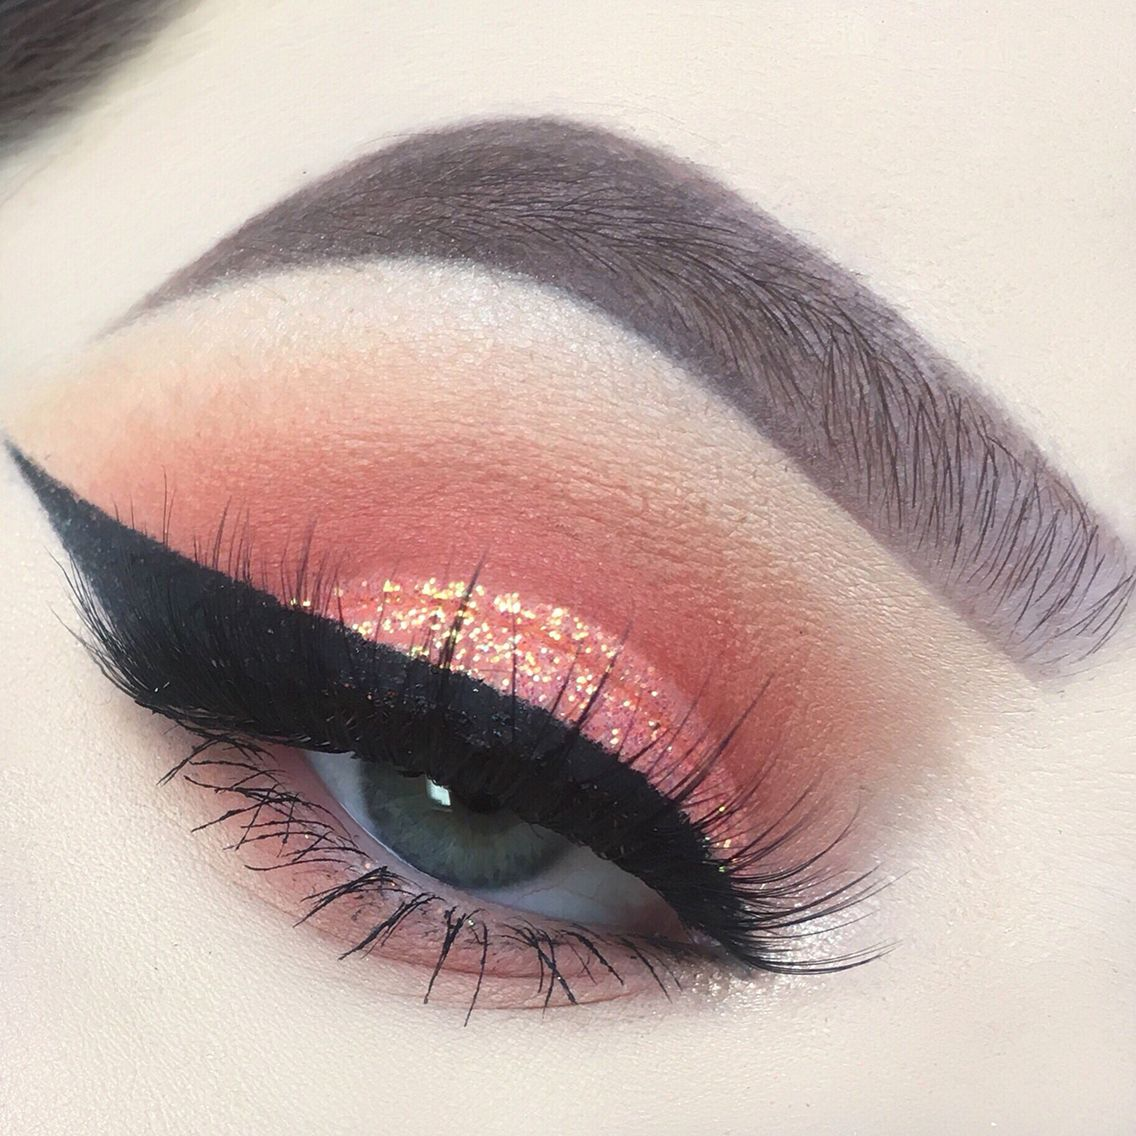 Coral Shimmery Eye Makeup Inspiration And Heavy Cat Eyeliner